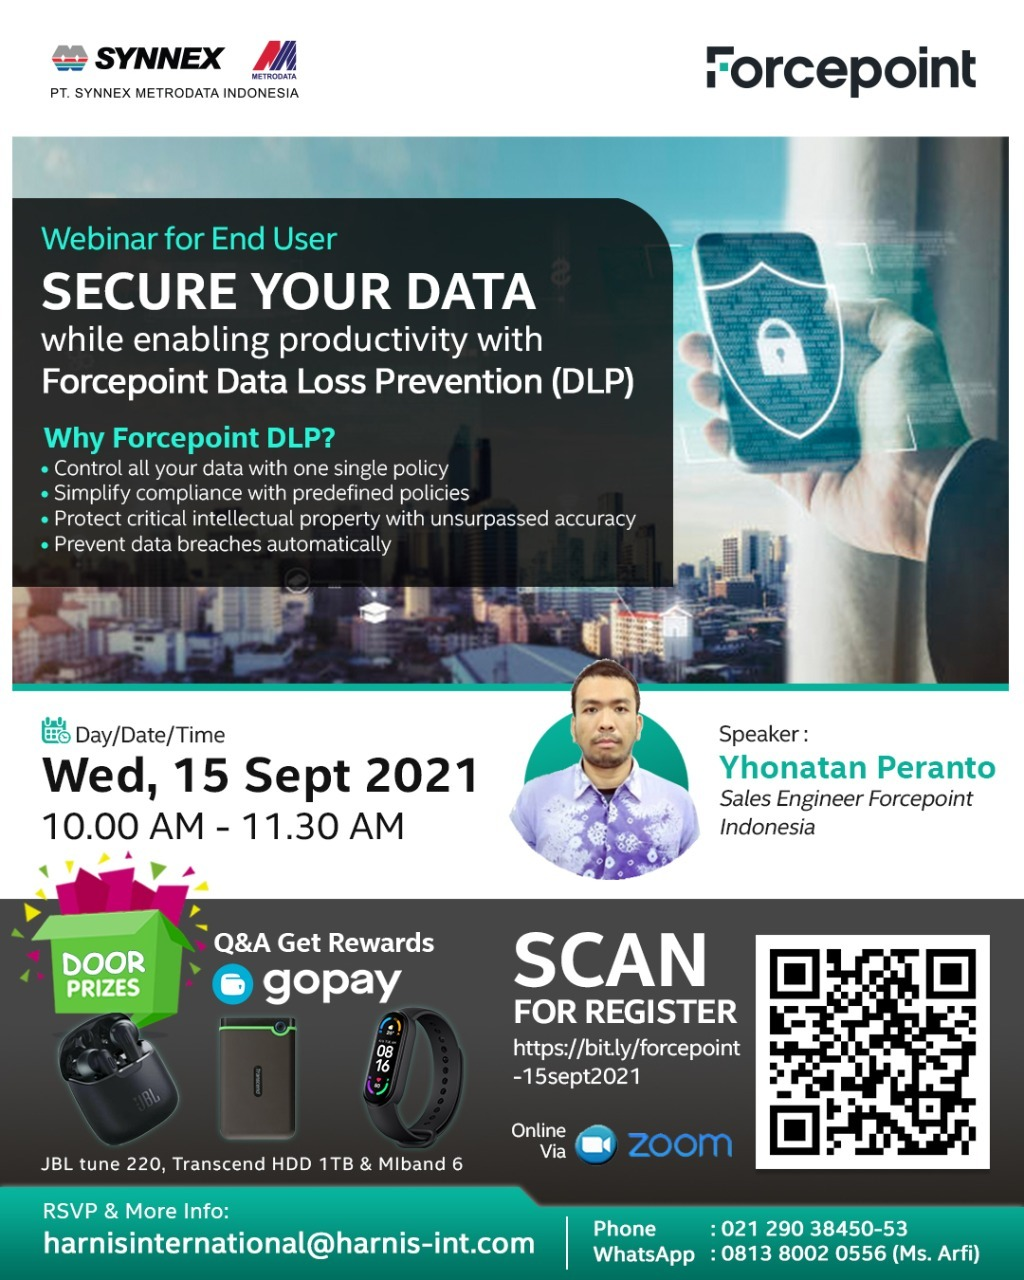 https://www.synnexmetrodata.com/wp-content/uploads/2021/08/EDM-Webinar-for-End-User-Secure-Your-Data-while-enabling-productivity-with-Forcepoint-Data-Loss-Prevention-DLP.jpeg